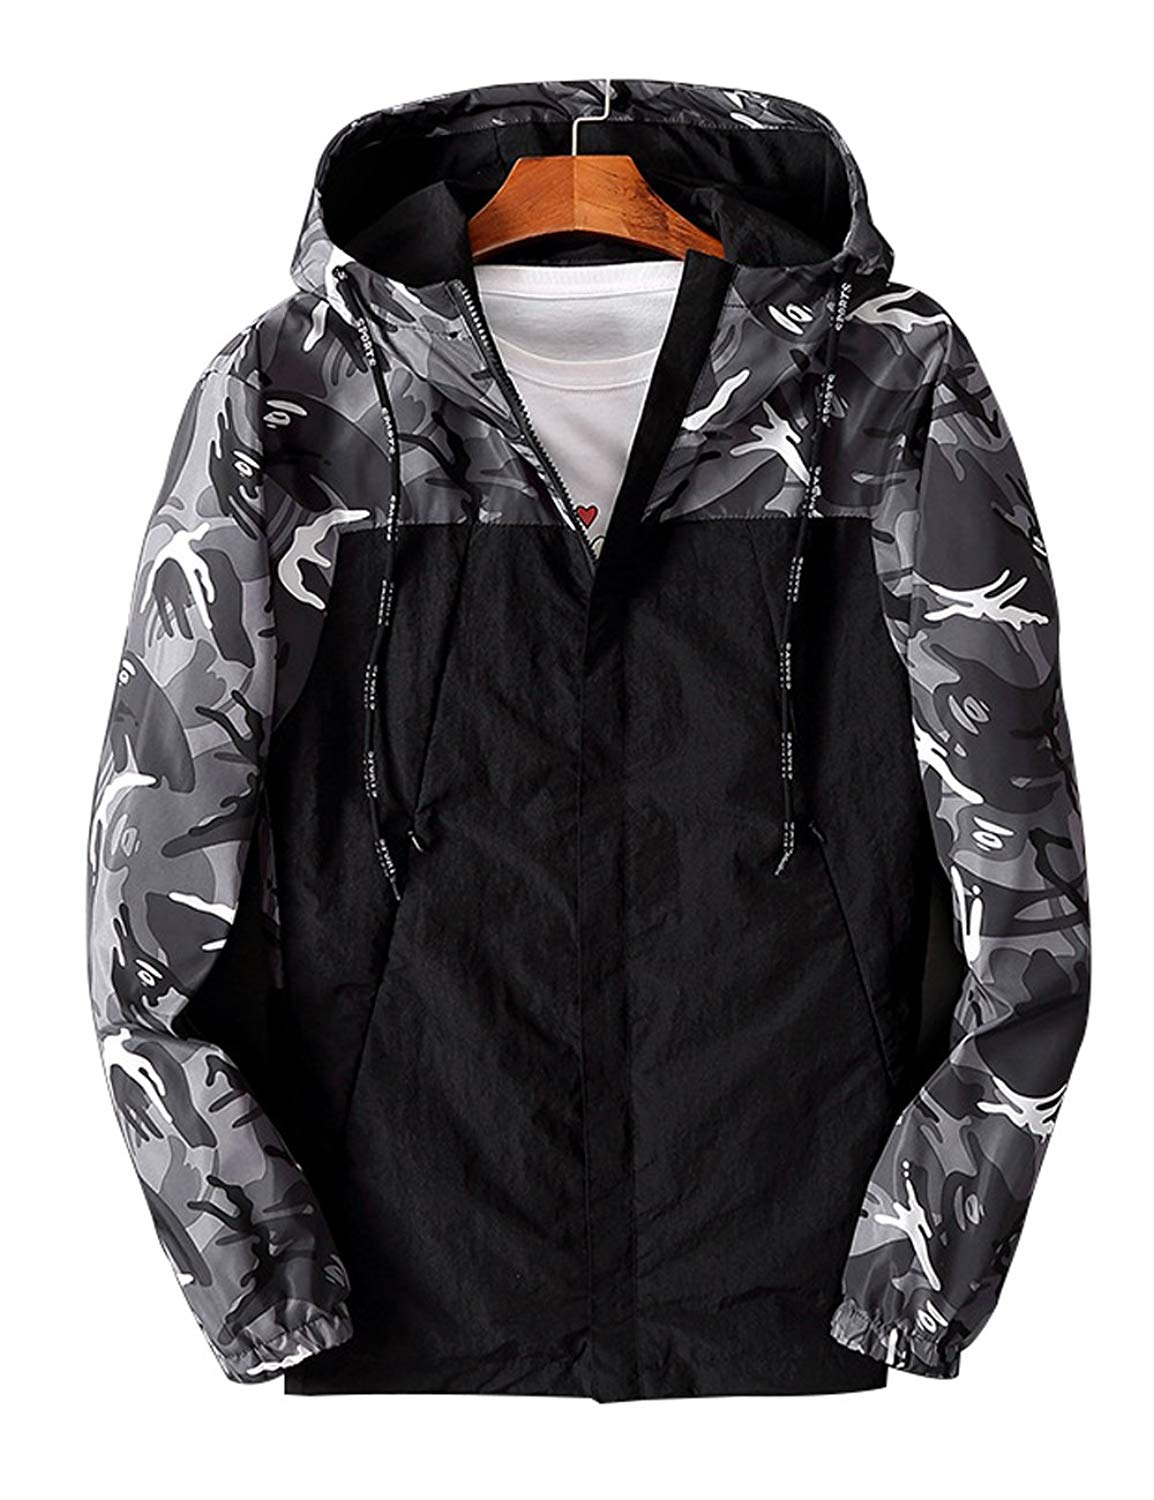 82d2aedeac6c Get Quotations · Zoulee Men s Front-Zip Jacket Sportswear Windrunner Jacket  Camo